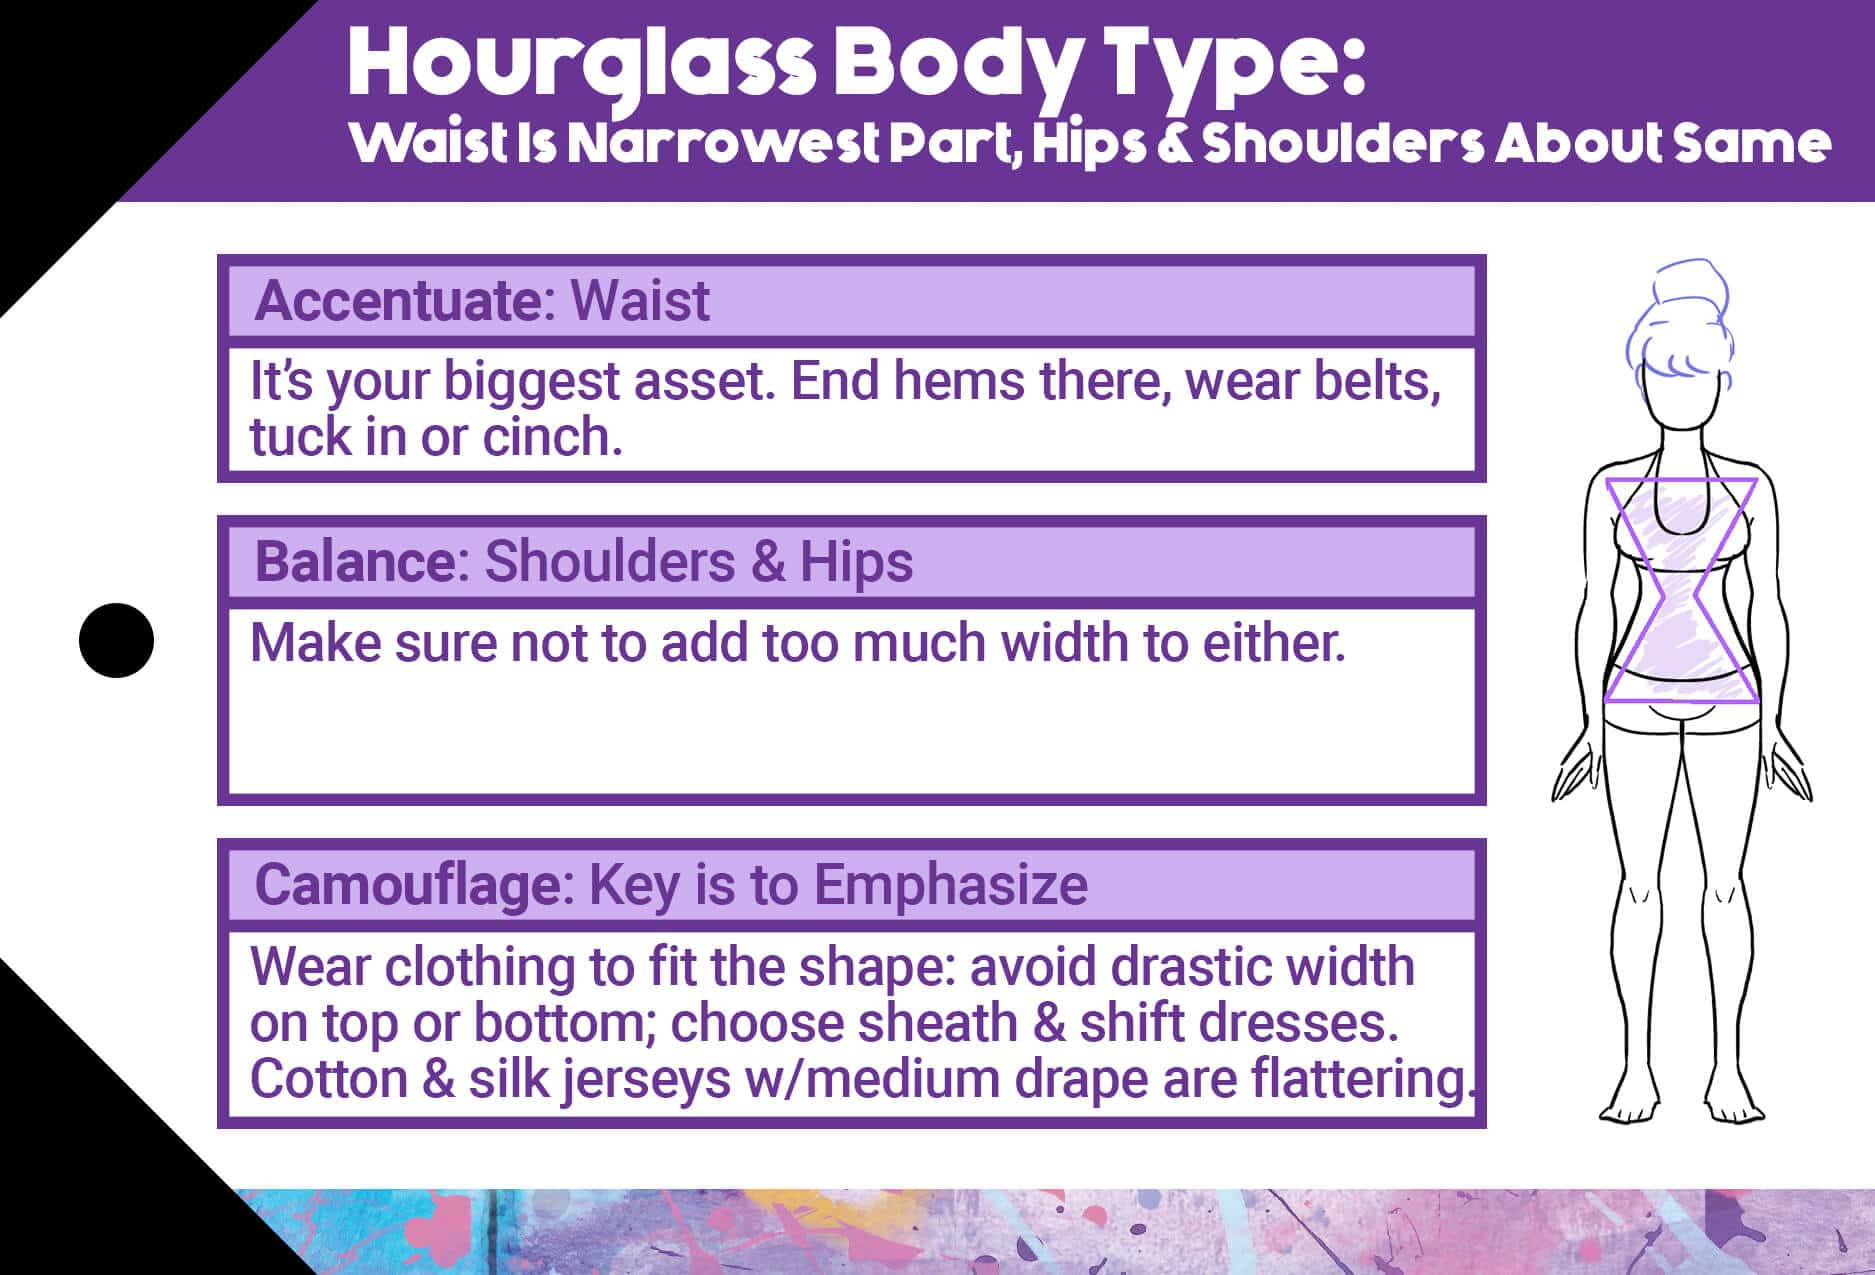 Hourglass Body Type Styling Suggestions